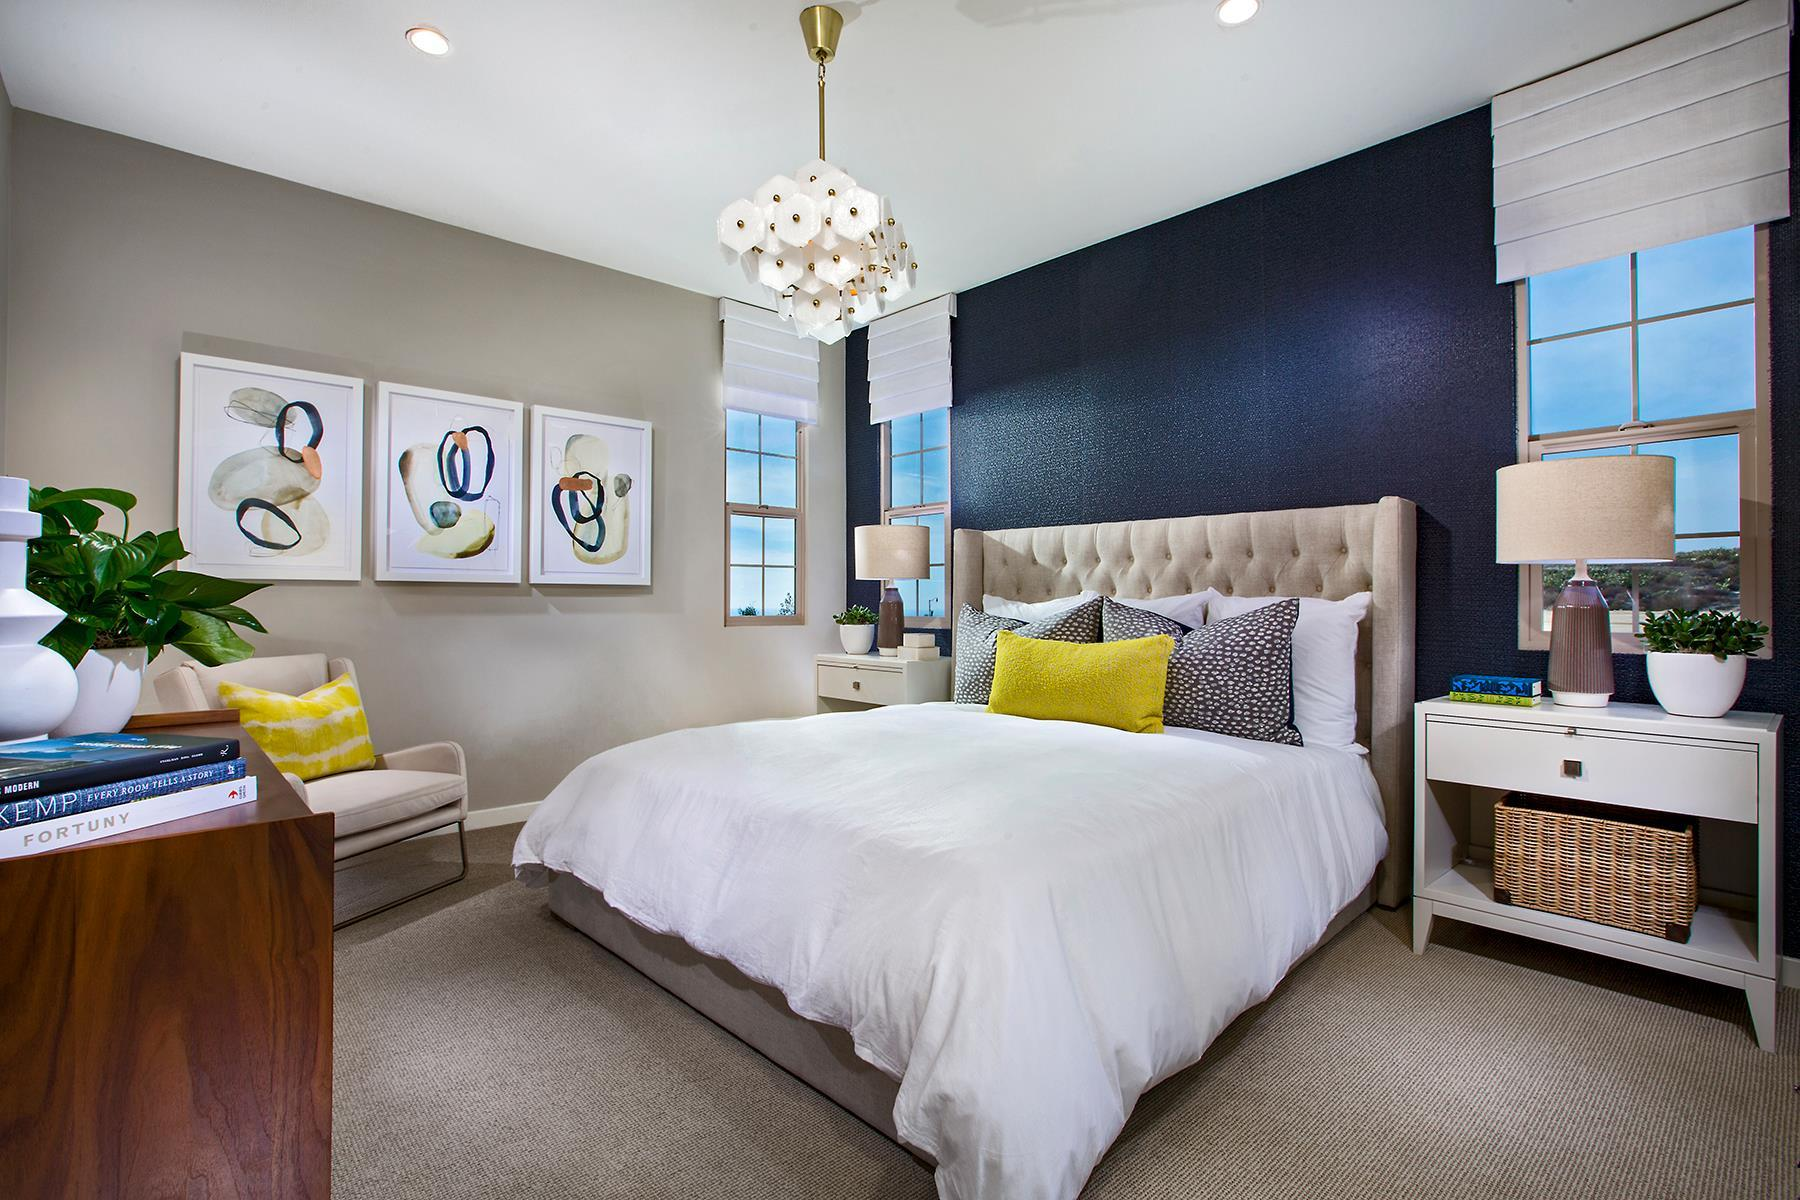 Bedroom featured in the Residence 3 By California Pacific Homes in Orange County, CA